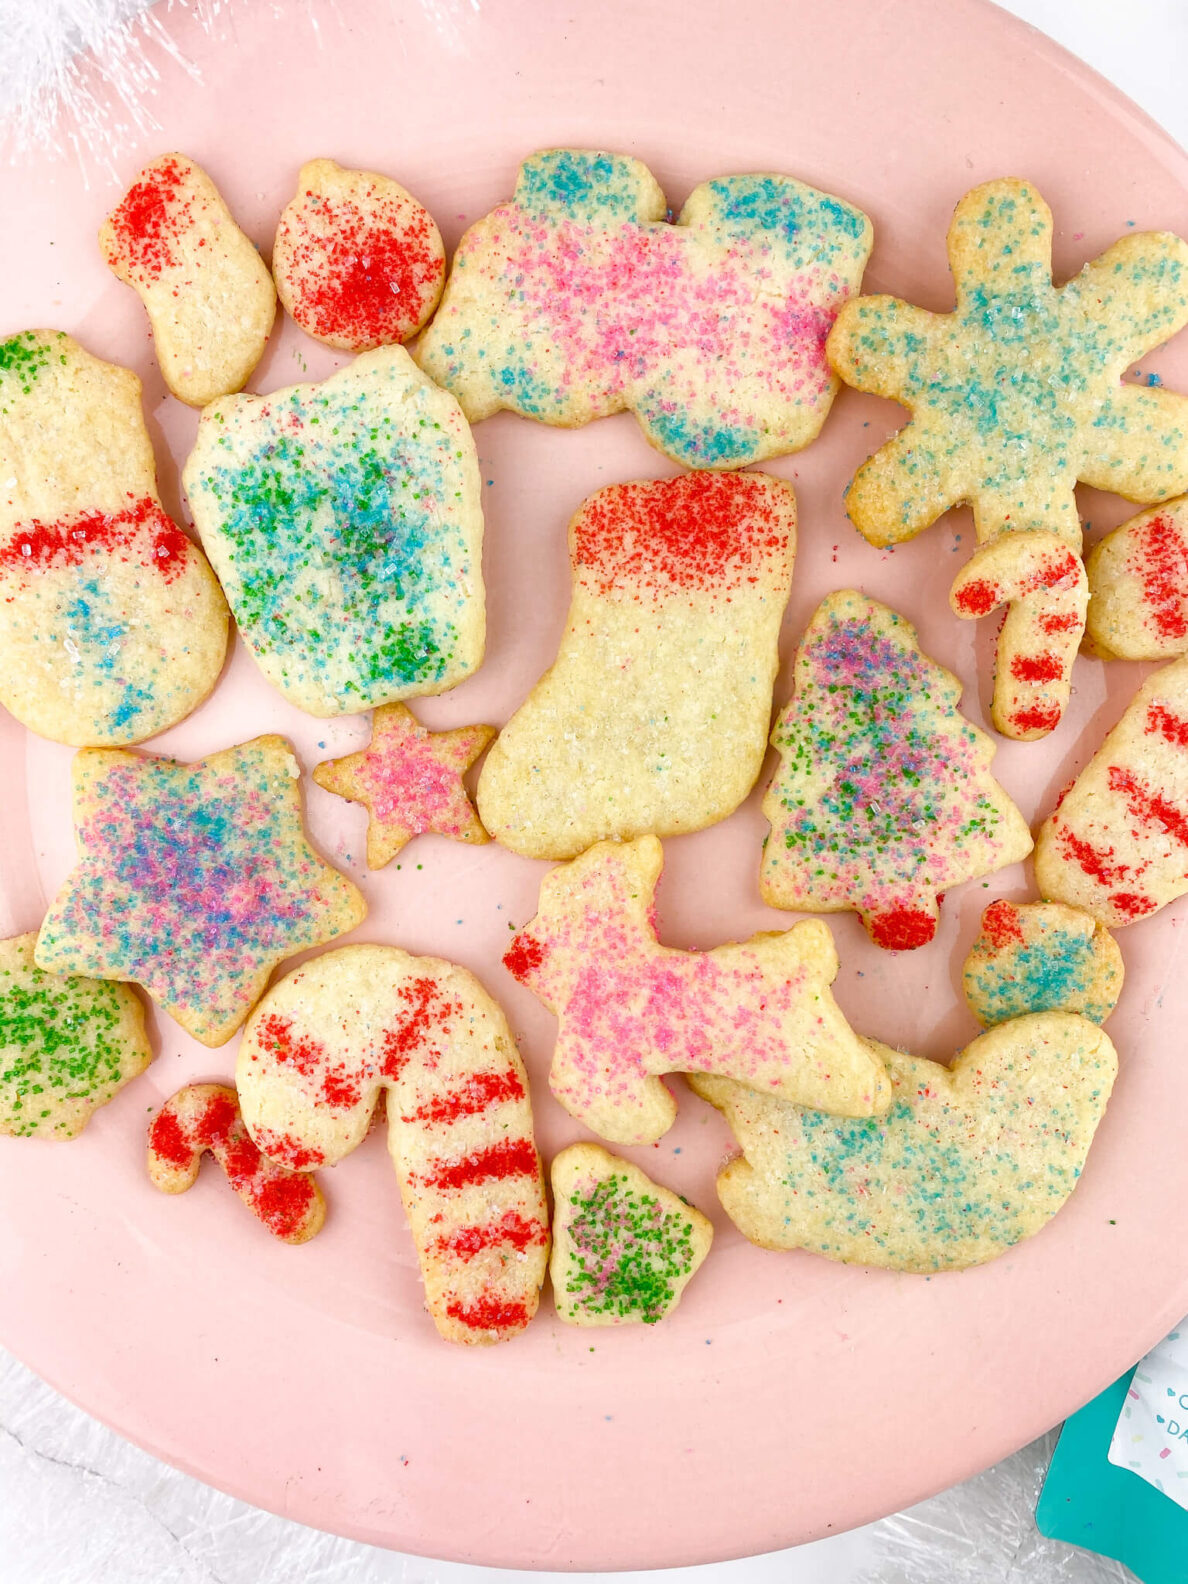 Kate's Safe and Sweet - Rolled Sugar Cookies on Plate Close